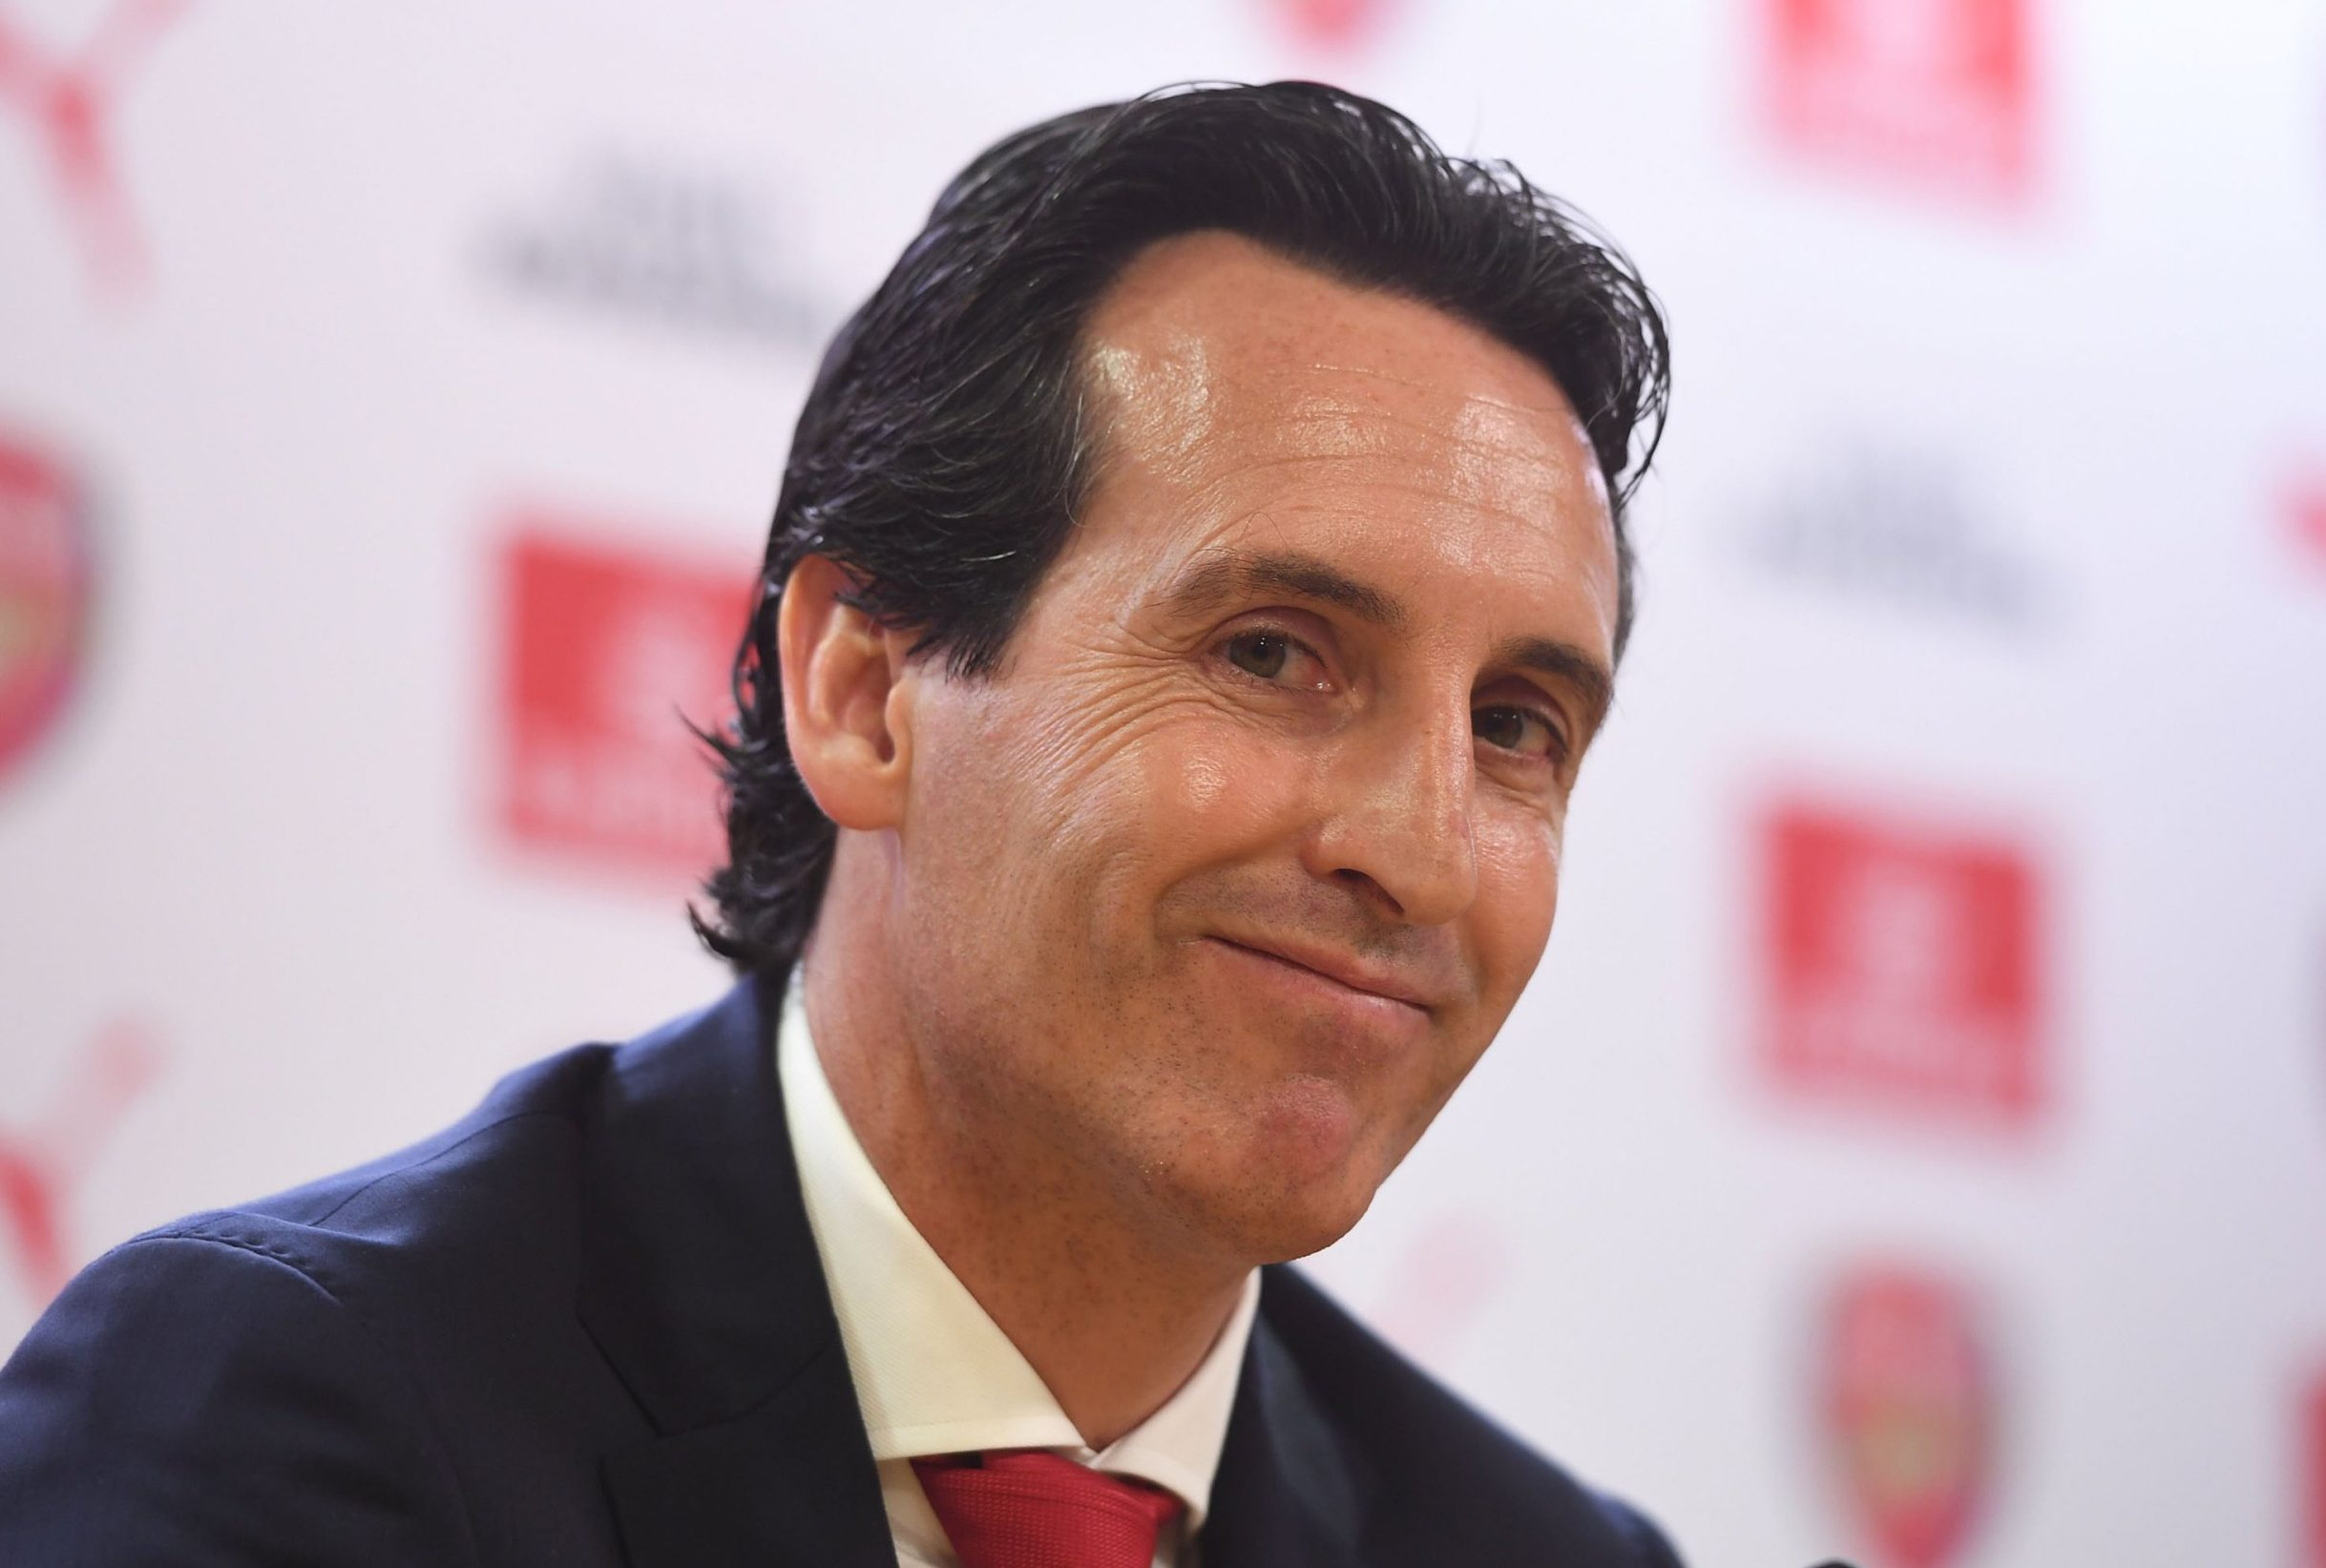 LONDON, ENGLAND - MAY 23: Arsenal new Head Coach Unai Emery attends a press conference at Emirates Stadium on May 23, 2018 in London, England. (Photo by Stuart MacFarlane/Arsenal FC via Getty Images)